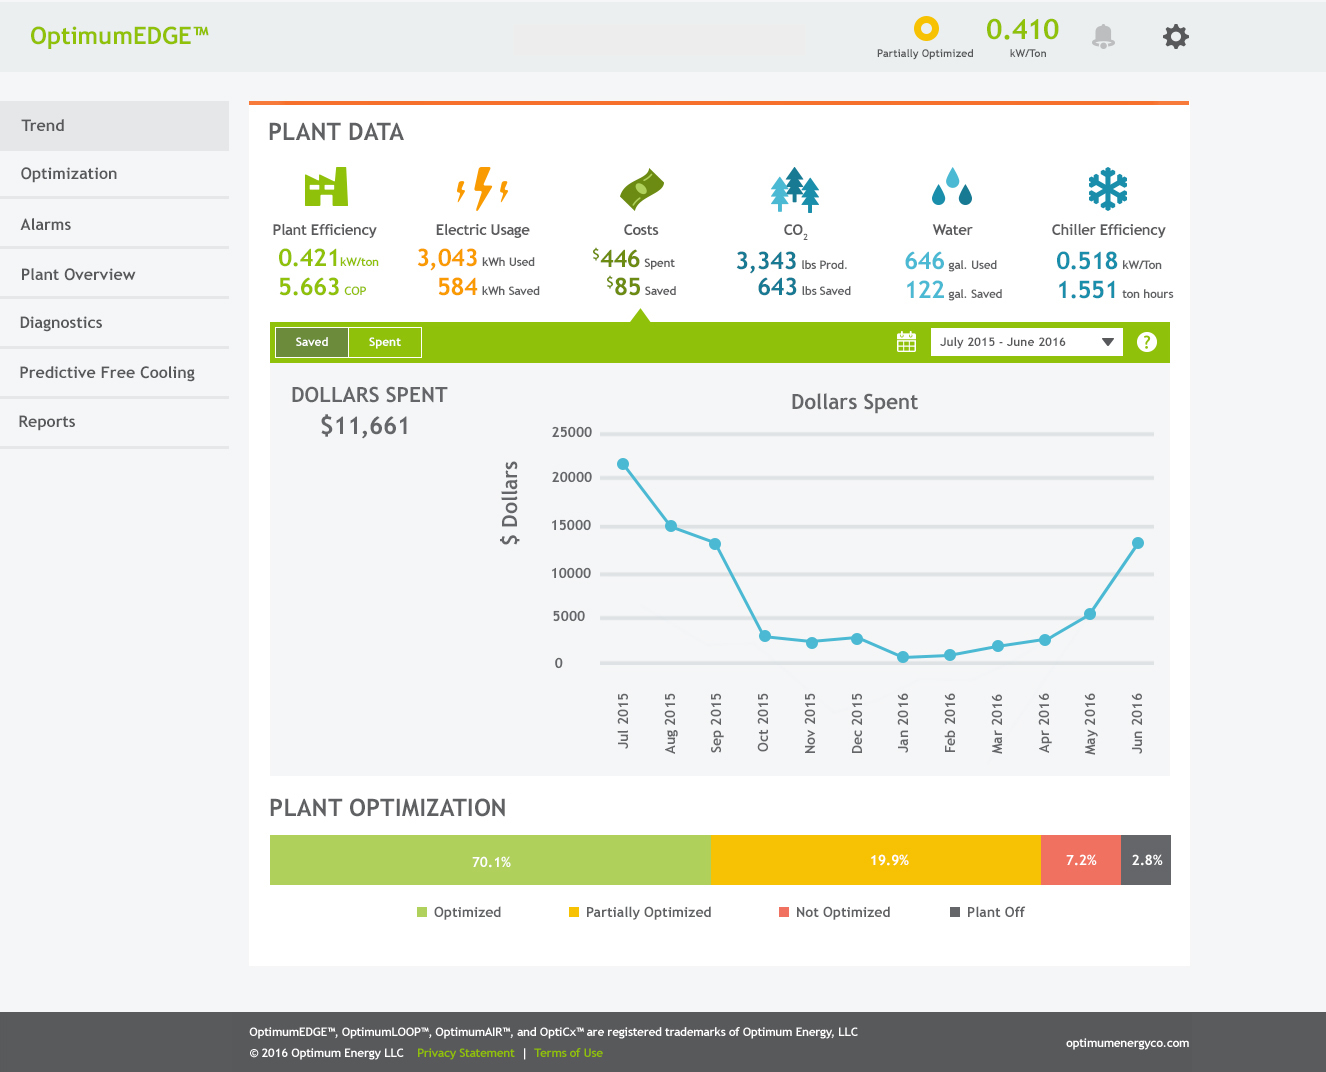 OptimumEDGE Dashboard